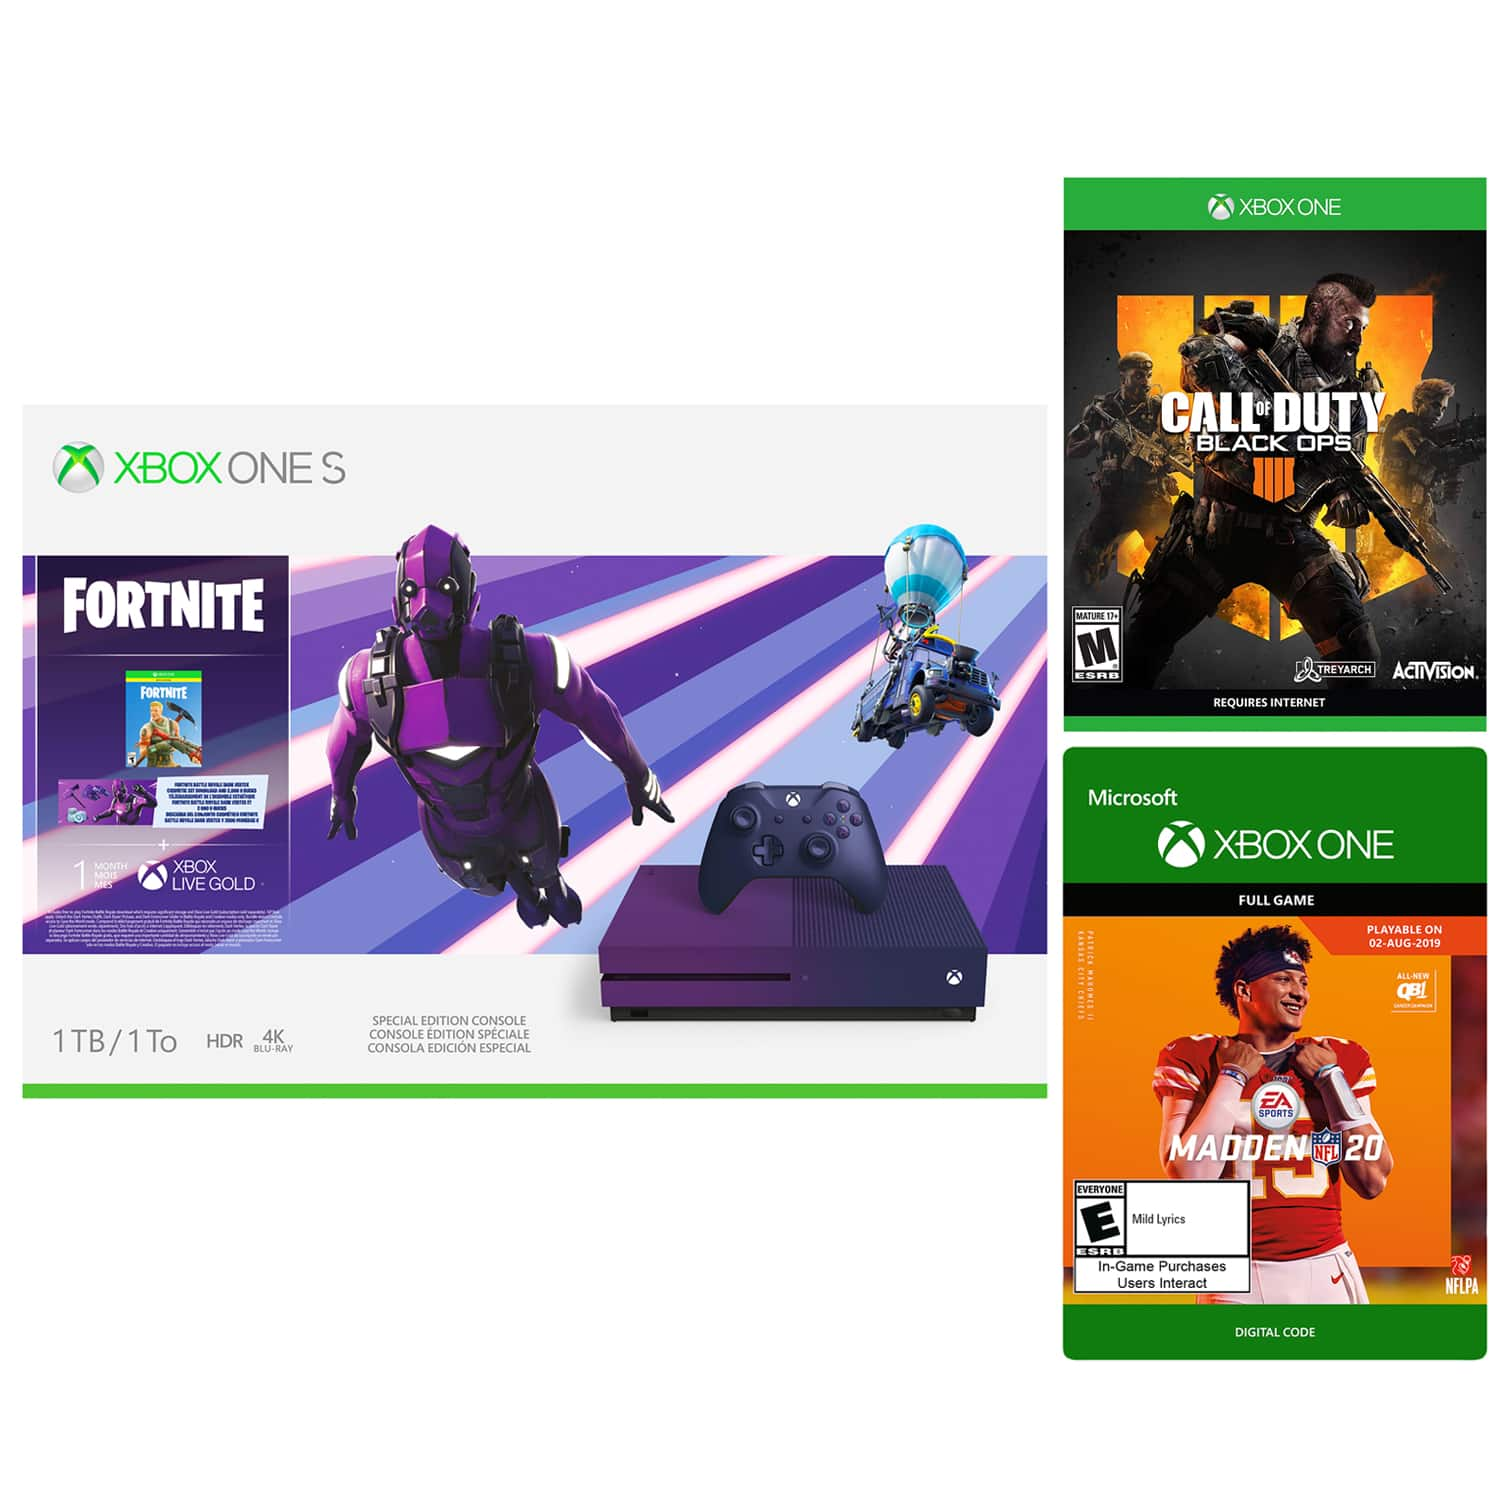 Xbox One S 1TB Fortnite Special Edition with Call of Duty: Black Ops 4 and Madden NFL 20 for $299.99